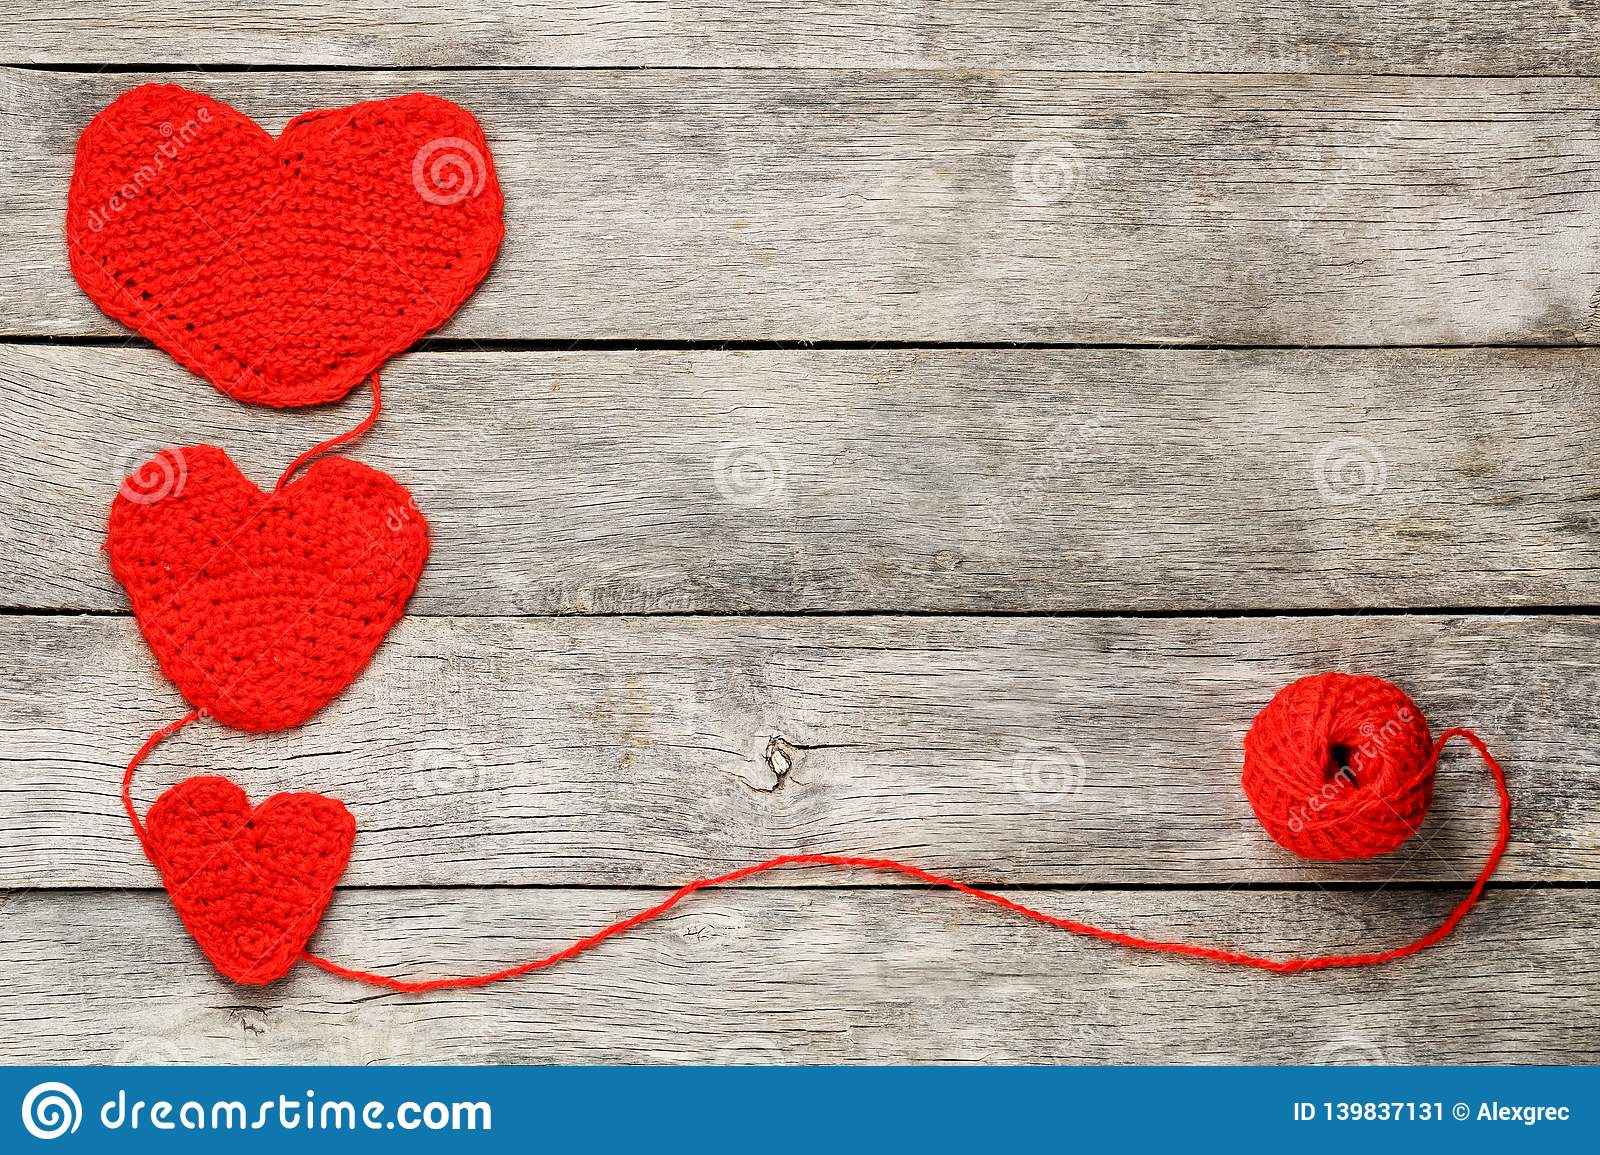 Three red knitted hearts on a gray wooden background, symbolizing love and family. Family relationship, bonds